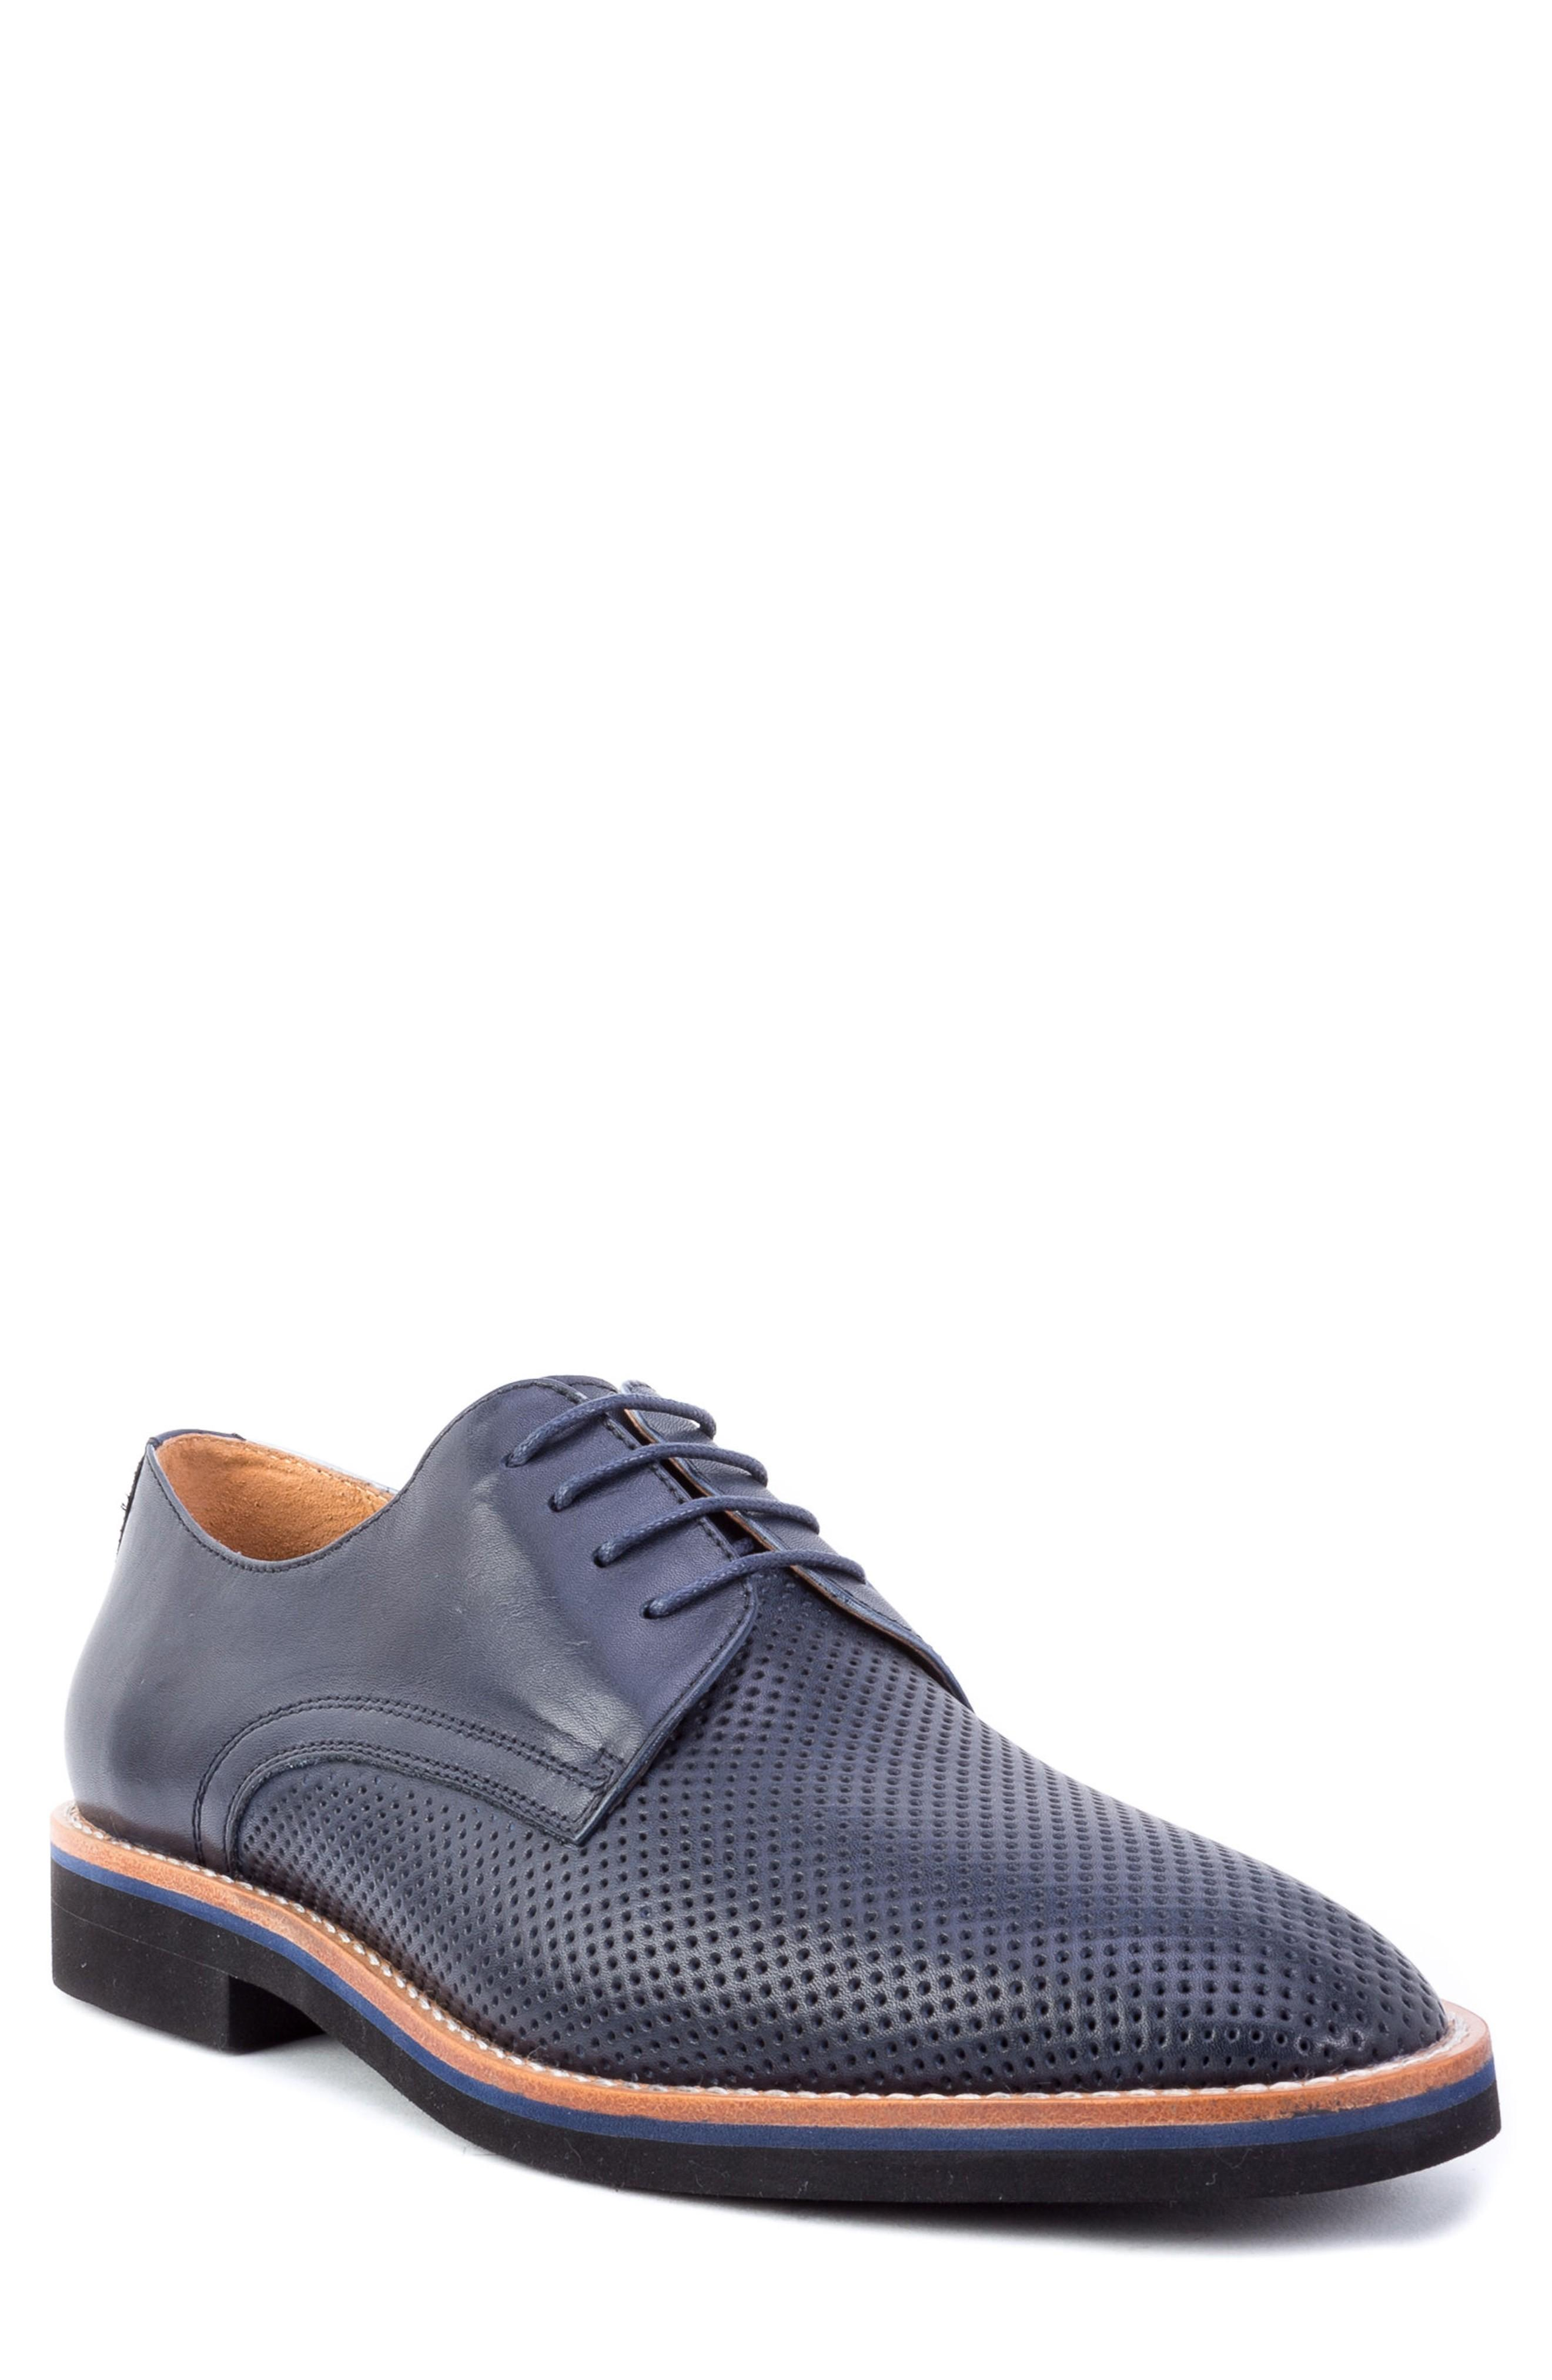 Zanzara Hartung Perforated Plain Toe Derby In Navy Leather